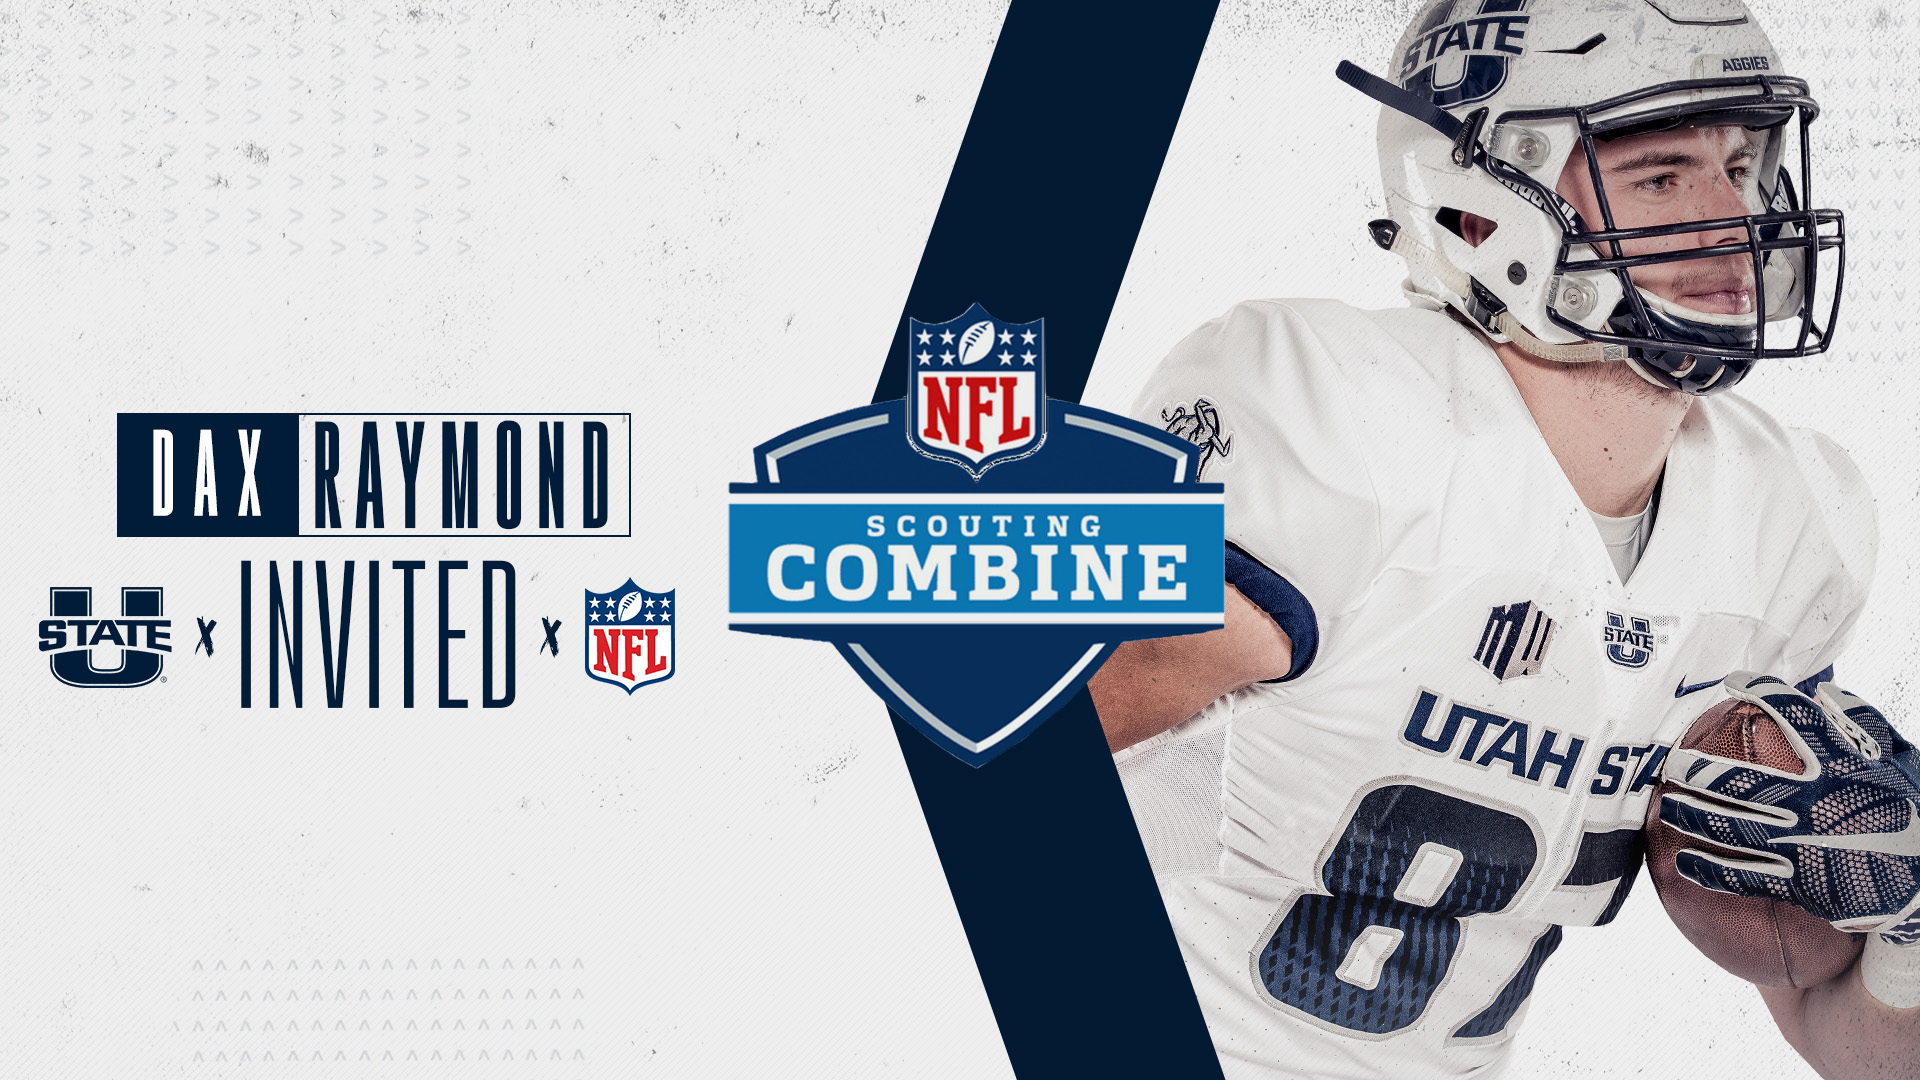 sale retailer 11d17 13775 Utah State's Dax Raymond Invited to NFL Scouting Combine ...